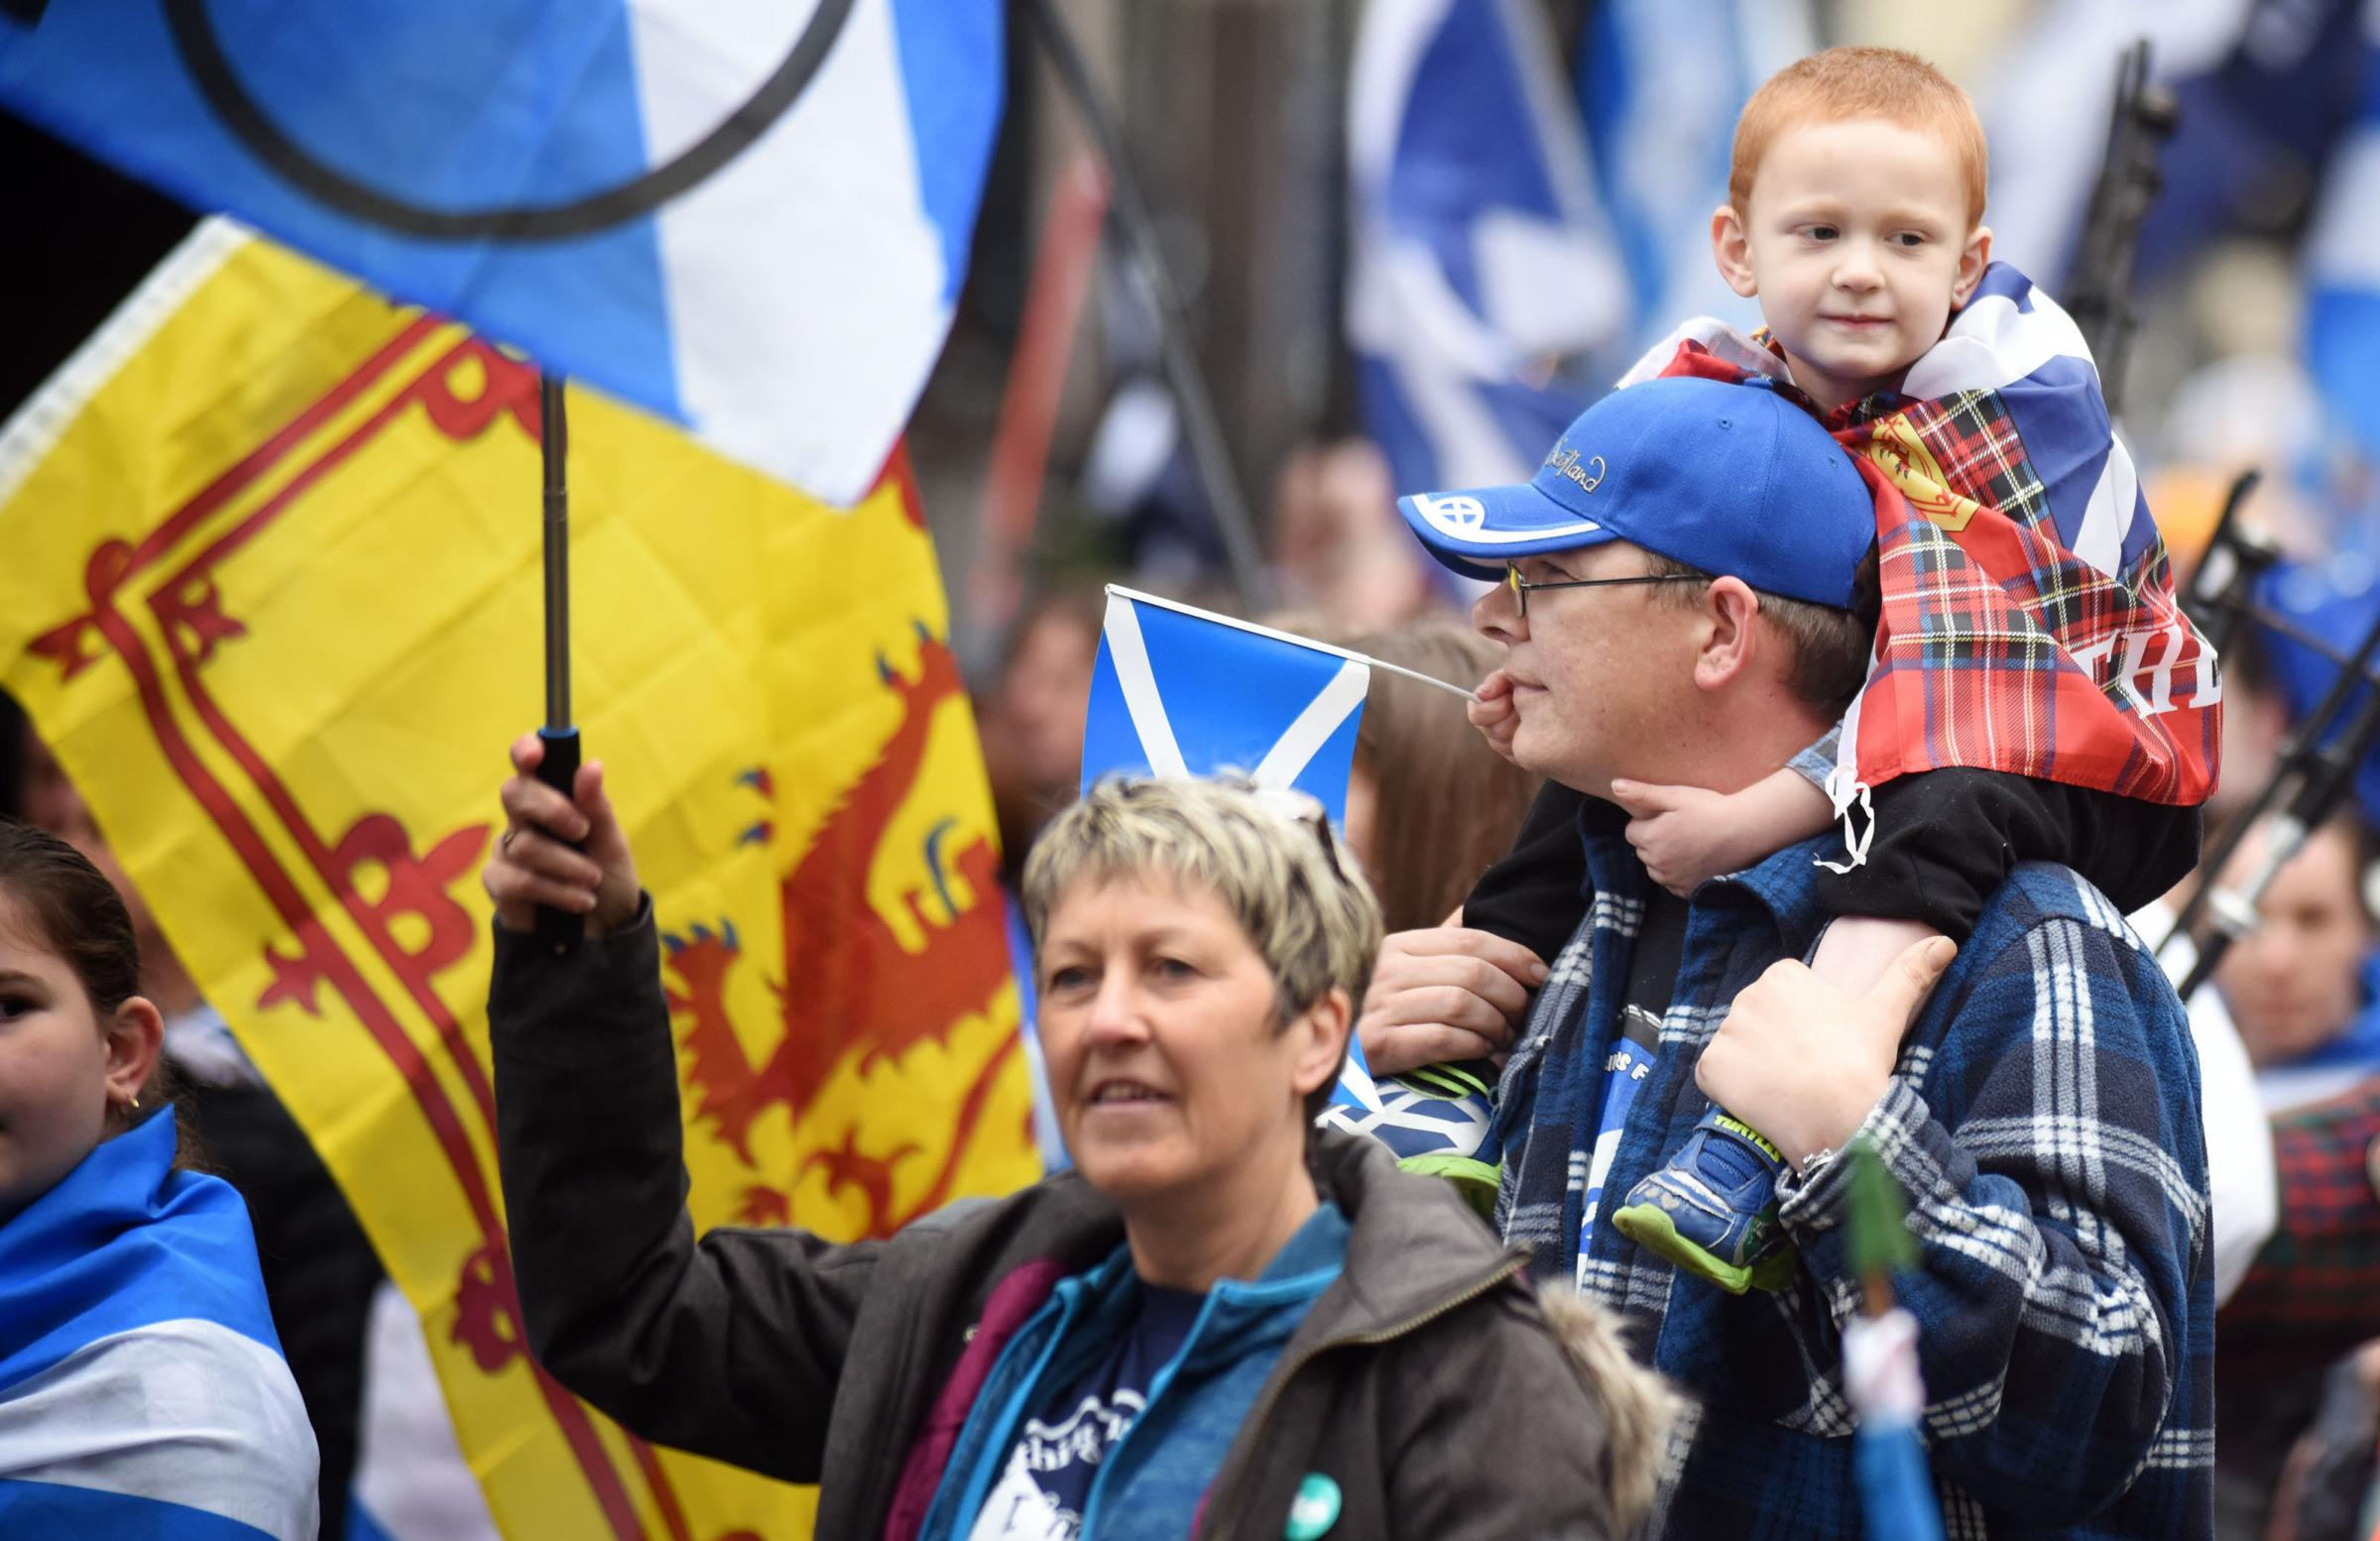 Recent meetings of grassroots Yes groups suggests support for independence remains strong